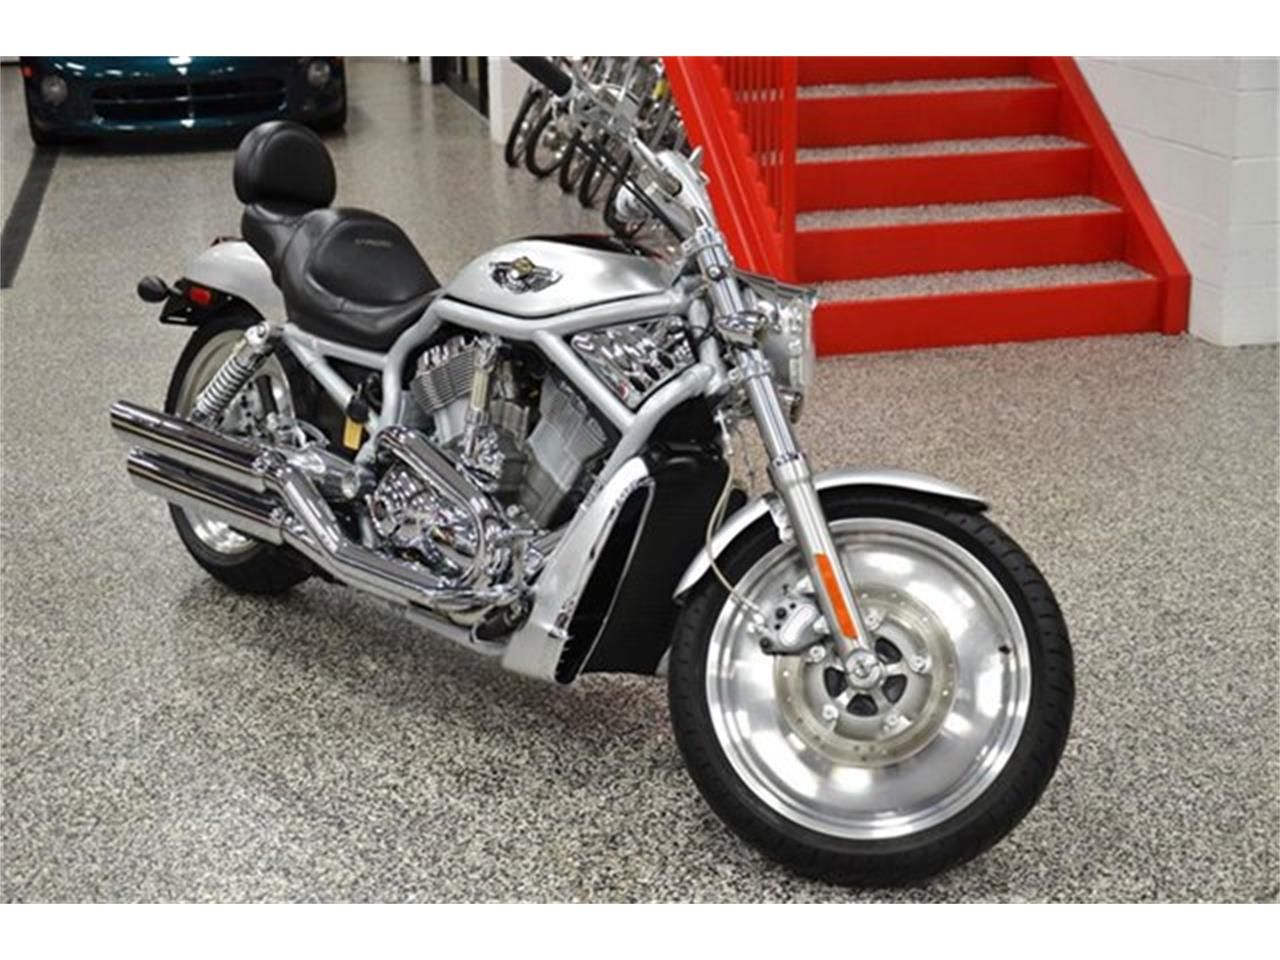 2003 Harley-Davidson VRSC for sale in Plainfield, IL – photo 11